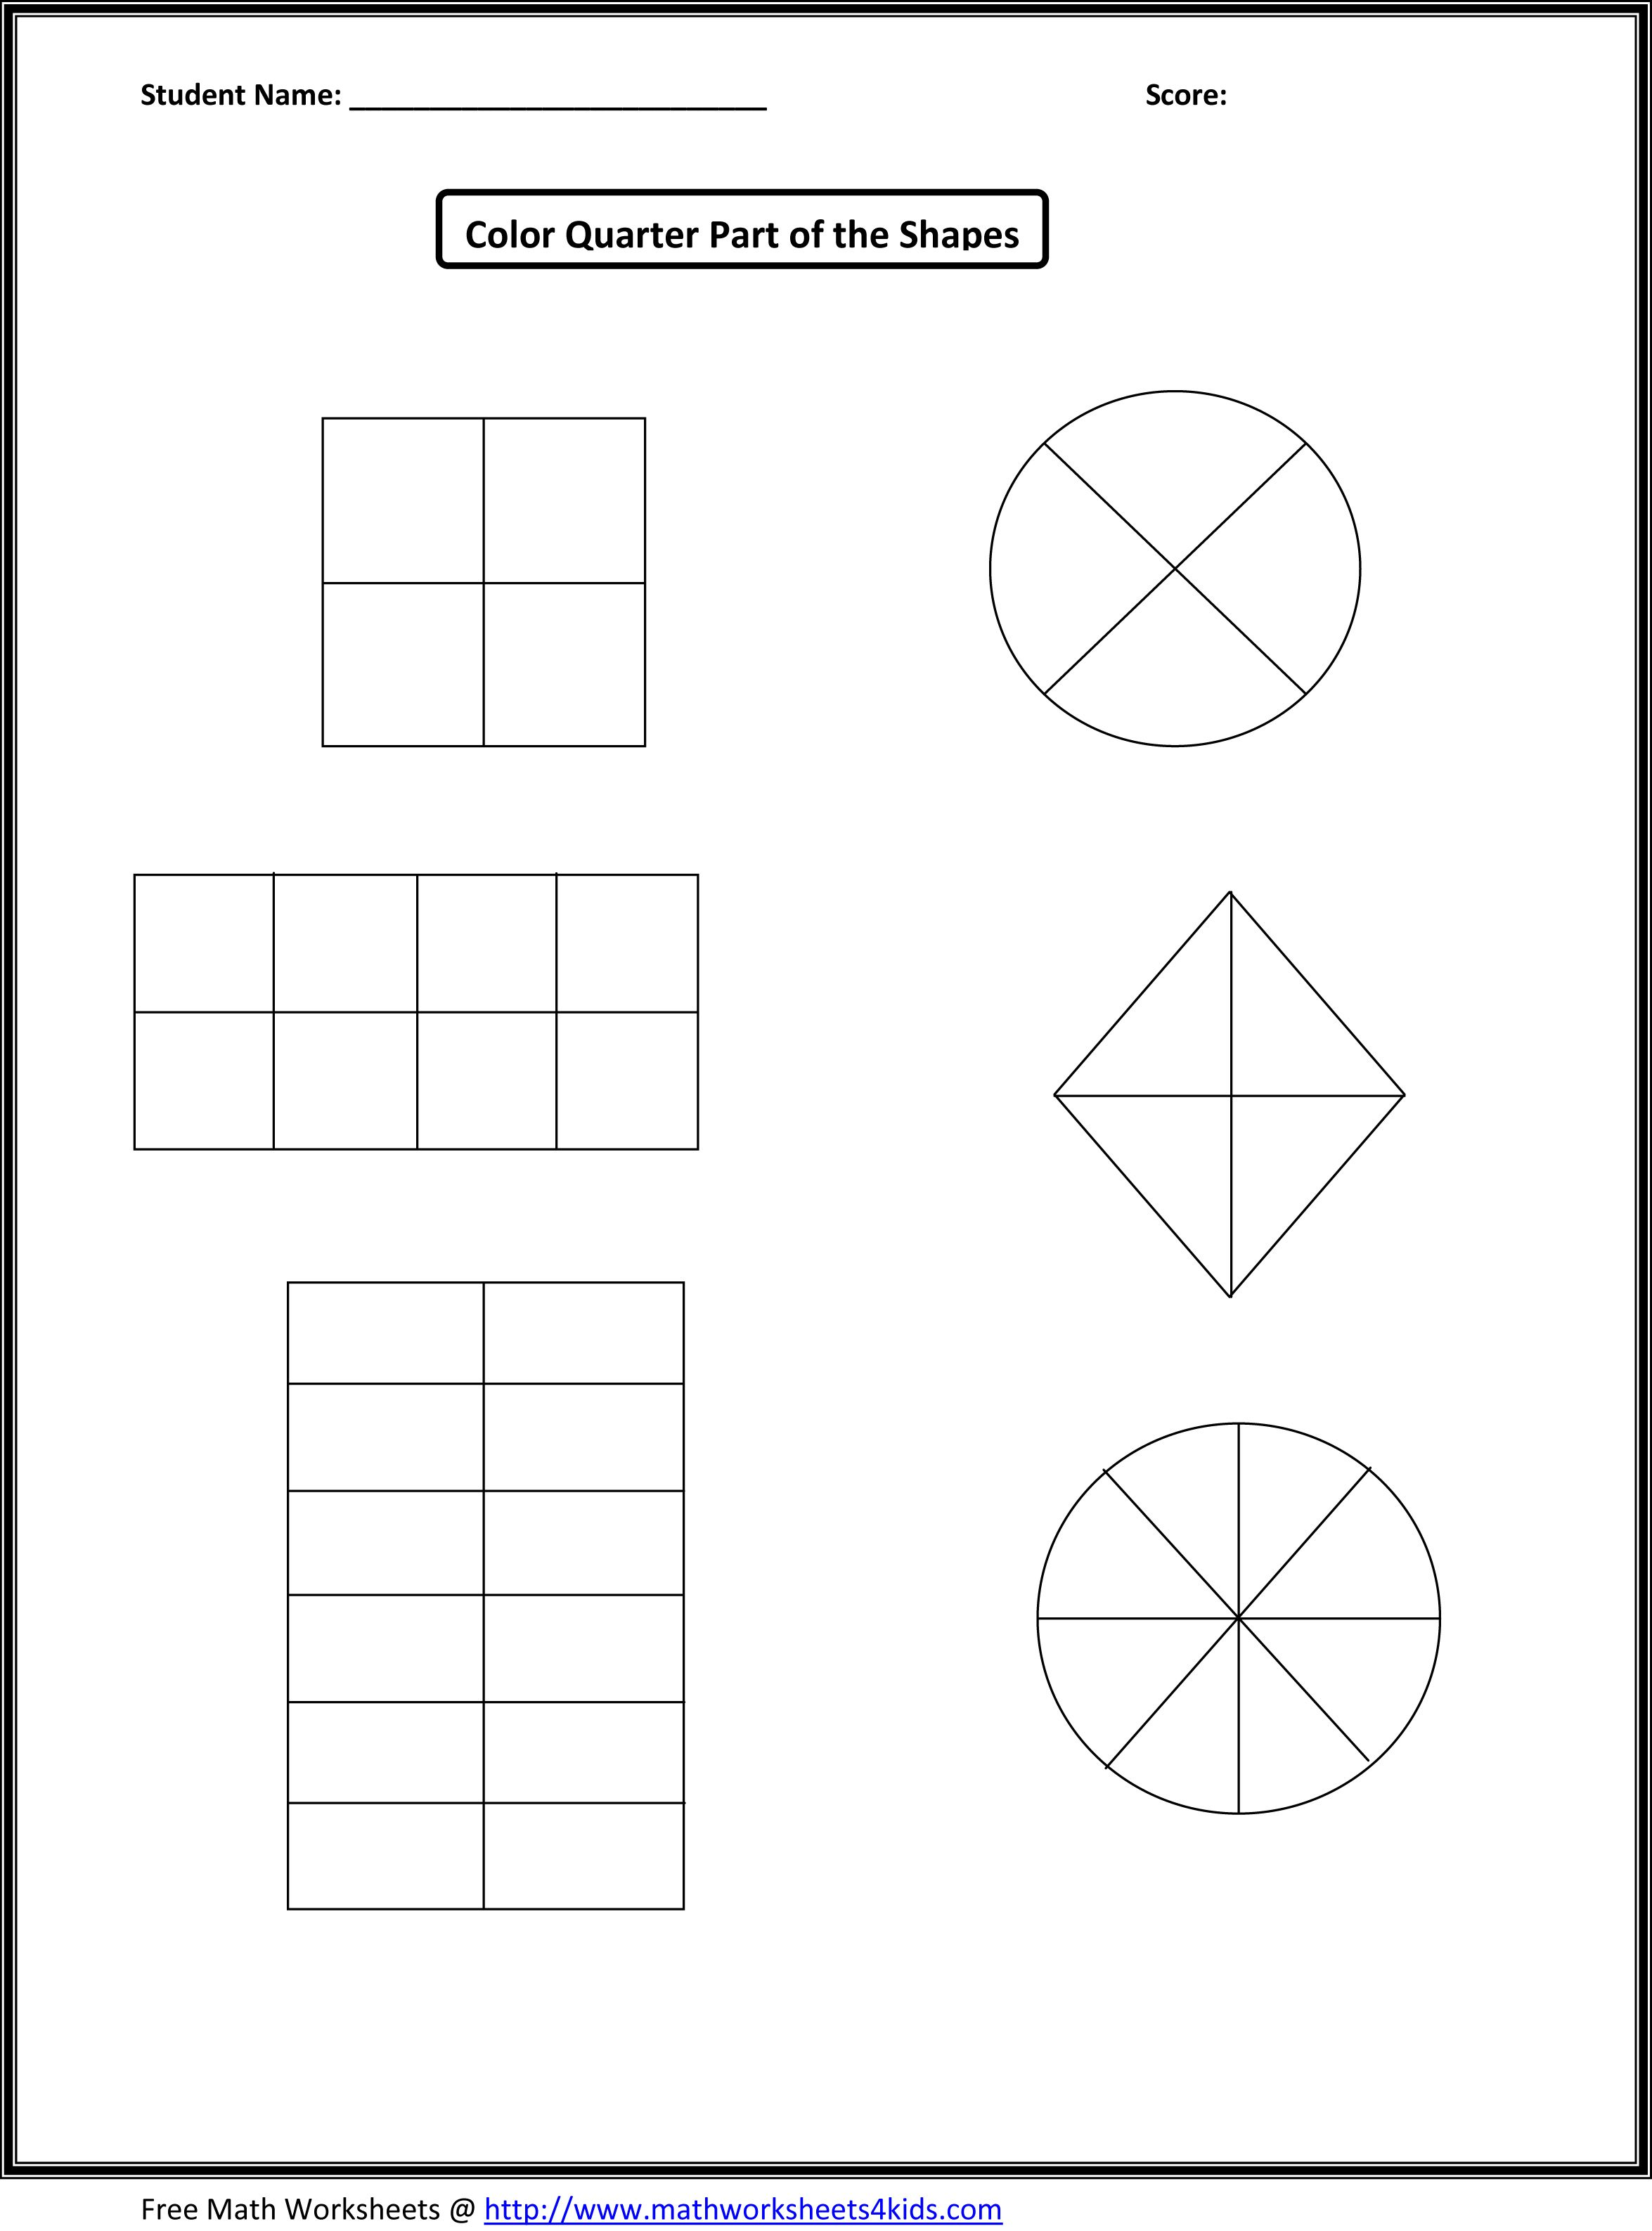 Worksheets Illustration Of Fraction Grade 2 this would work for first grade fraction number sense assessment math worksheets